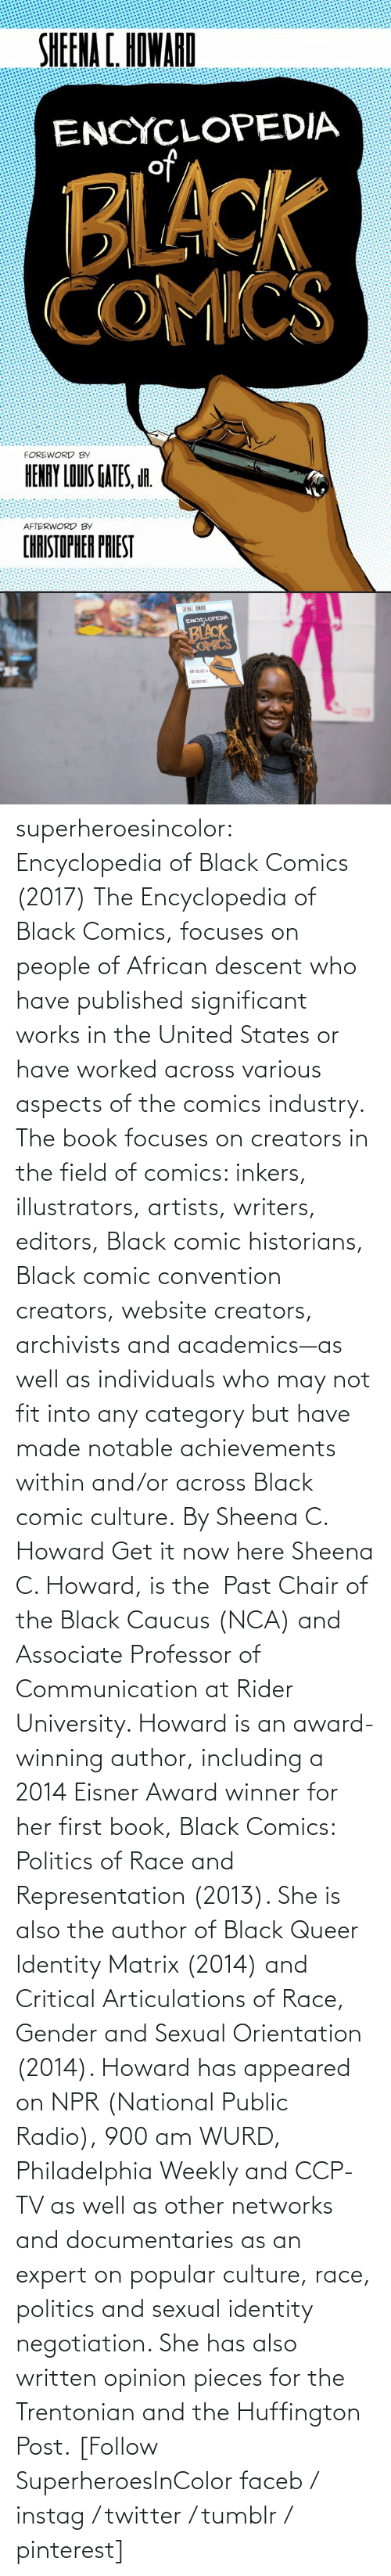 Into: superheroesincolor: Encyclopedia of Black Comics (2017) The Encyclopedia of Black Comics, focuses on people of African descent who have published significant works in the United States or have worked across various aspects of the comics industry.  The book focuses on creators in the field of comics: inkers, illustrators, artists, writers, editors, Black comic historians, Black comic convention creators, website creators, archivists and academics—as well as individuals who may not fit into any category but have made notable achievements within and/or across Black comic culture. By Sheena C. Howard Get it now here  Sheena C. Howard, is the  Past Chair of the Black Caucus (NCA) and Associate Professor of Communication at Rider University. Howard is an award-winning author, including a 2014 Eisner Award winner for her first book, Black Comics: Politics of Race and Representation (2013). She is also the author of Black Queer Identity Matrix (2014) and Critical Articulations of Race, Gender and Sexual Orientation (2014). Howard has appeared on NPR (National Public Radio), 900 am WURD, Philadelphia Weekly and CCP-TV as well as other networks and documentaries as an expert on popular culture, race, politics and sexual identity negotiation. She has also written opinion pieces for the Trentonian and the Huffington Post.   [Follow SuperheroesInColor faceb / instag / twitter / tumblr / pinterest]